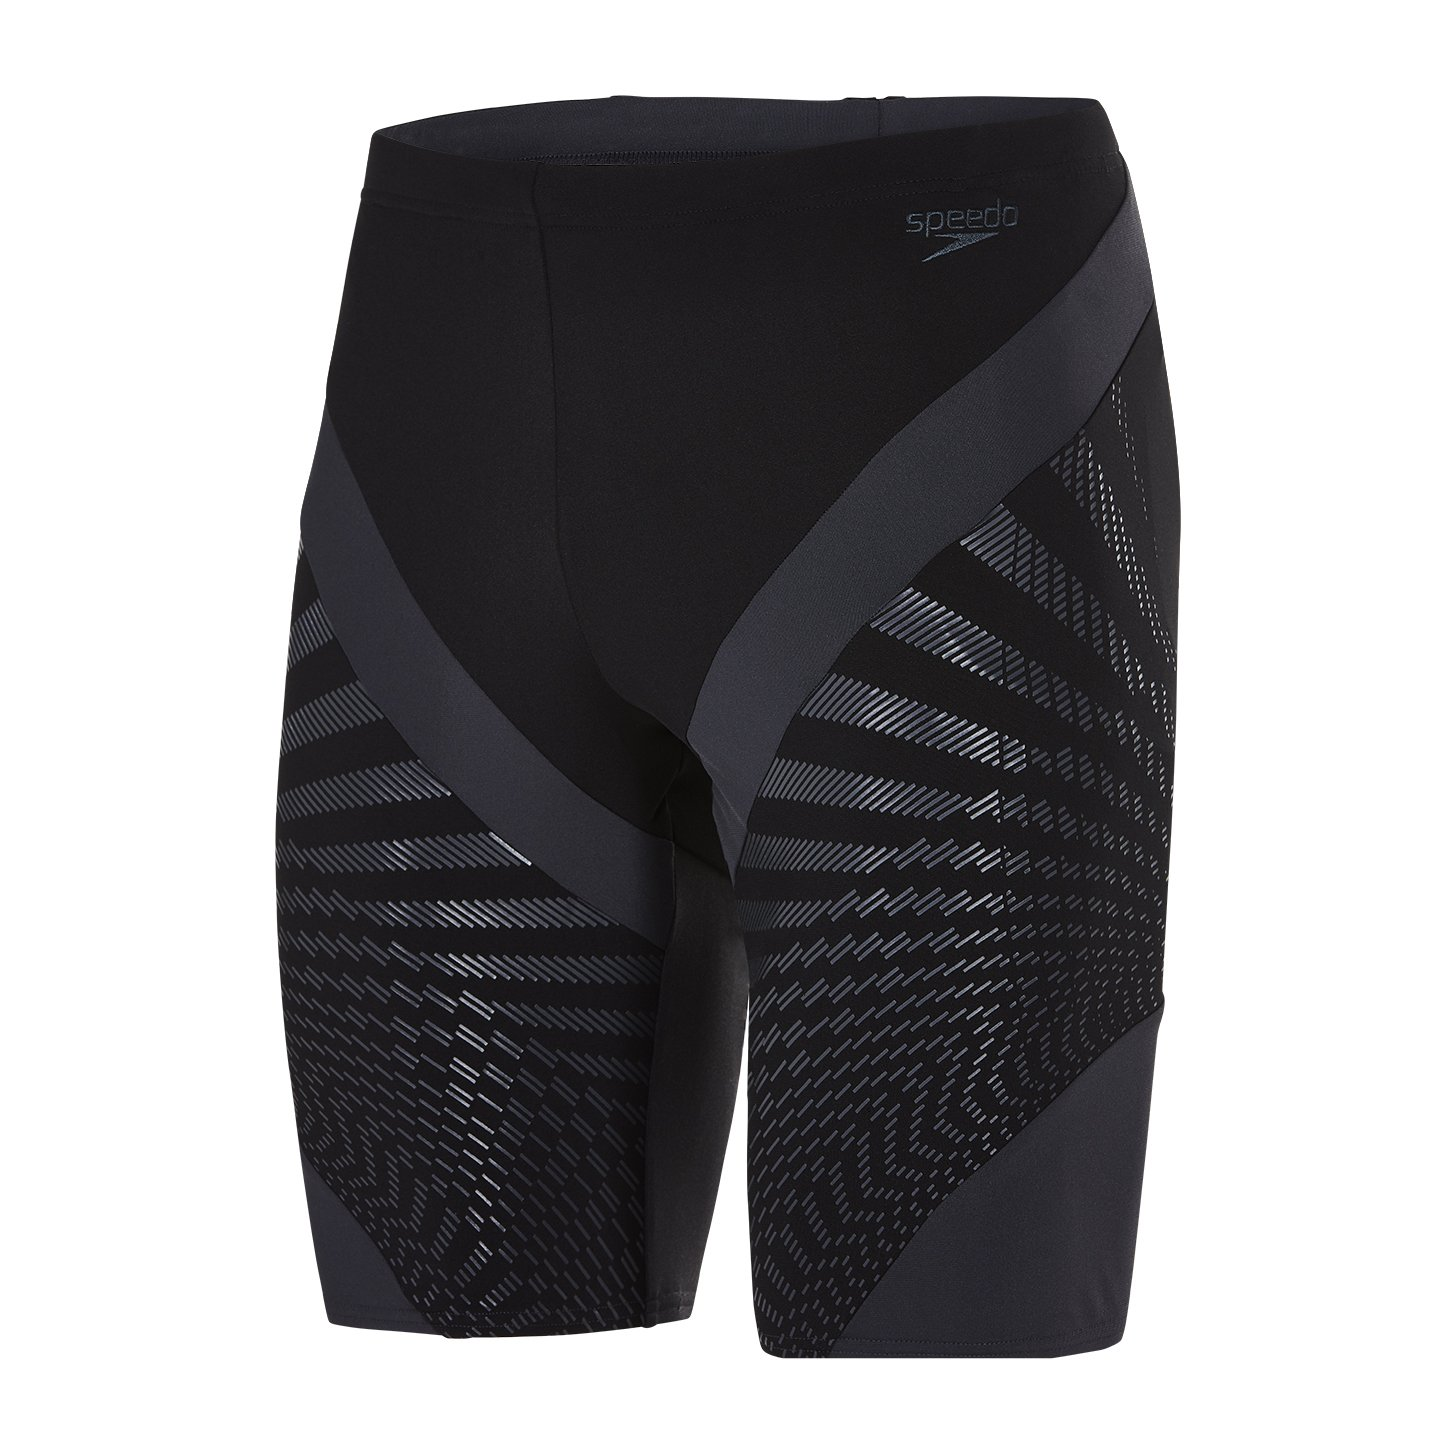 TALLA 30. Speedo Boys 'Chevron Splice Jammer